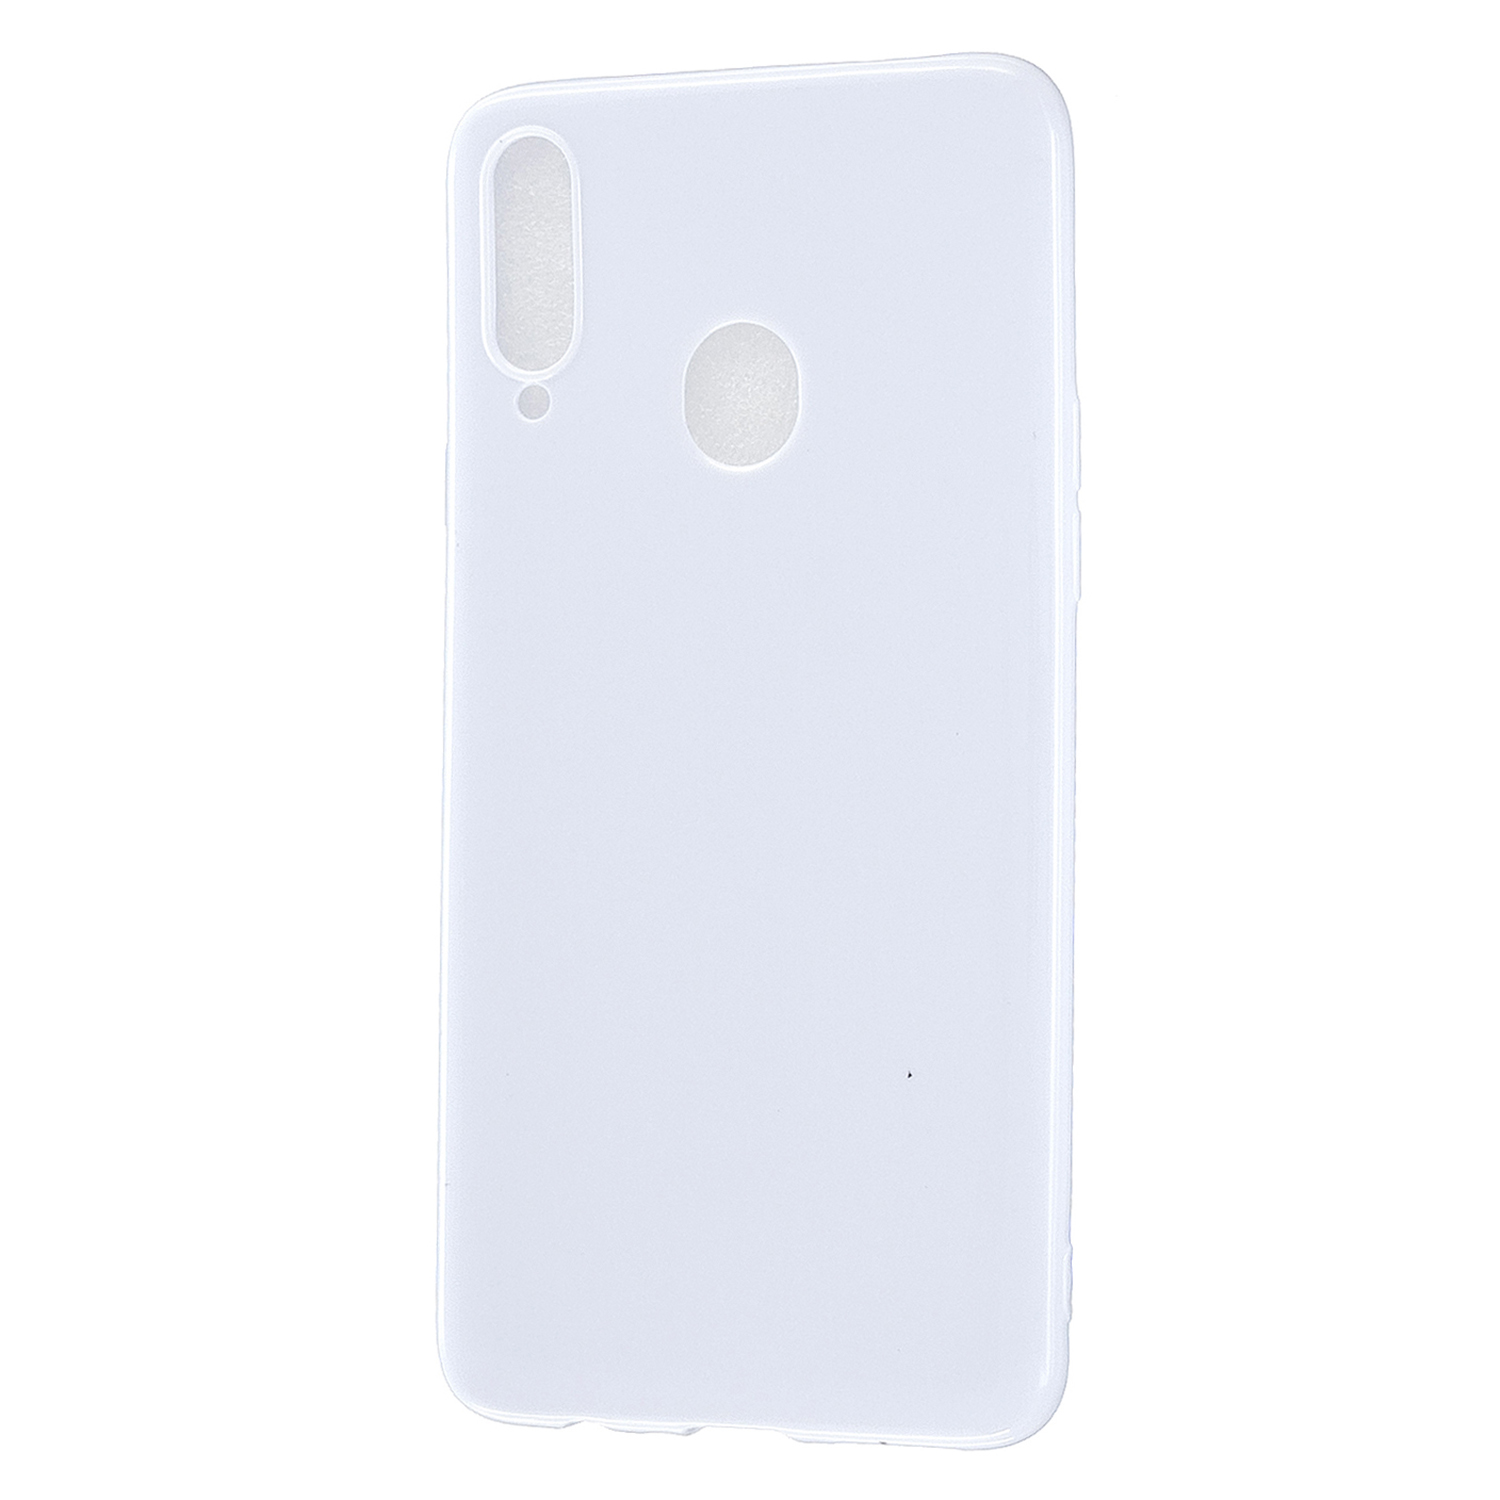 For Samsung A10S/A20S Cellphone Cover Soft TPU Phone Case Simple Profile Full Body Protection Anti-scratch Shell Milk white